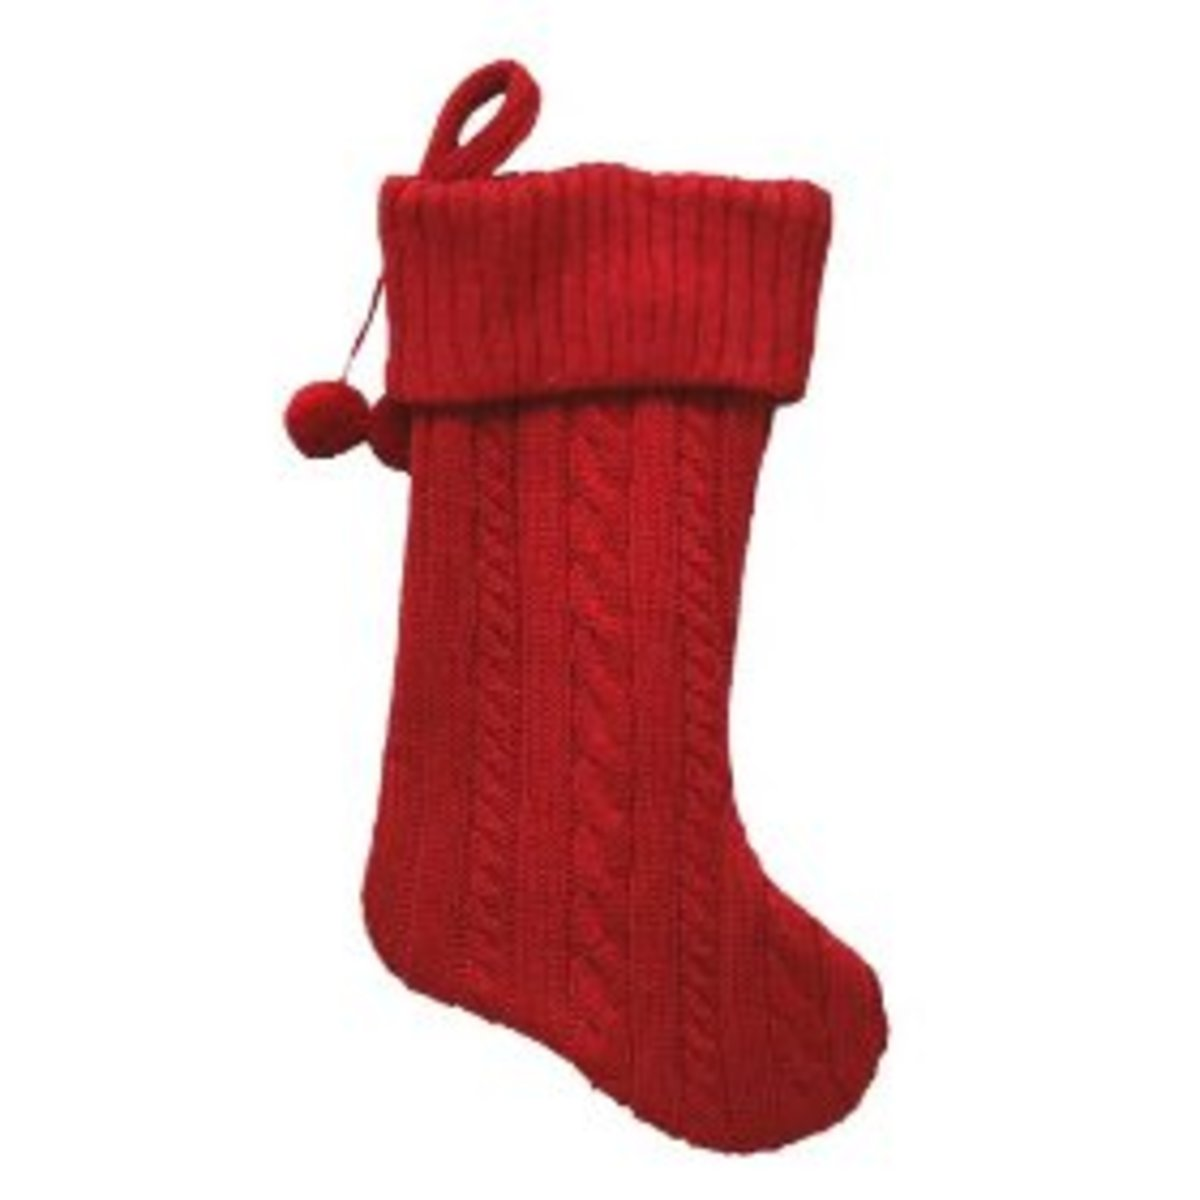 Knitting Pattern For Baby Christmas Stocking : Red Christmas Stockings